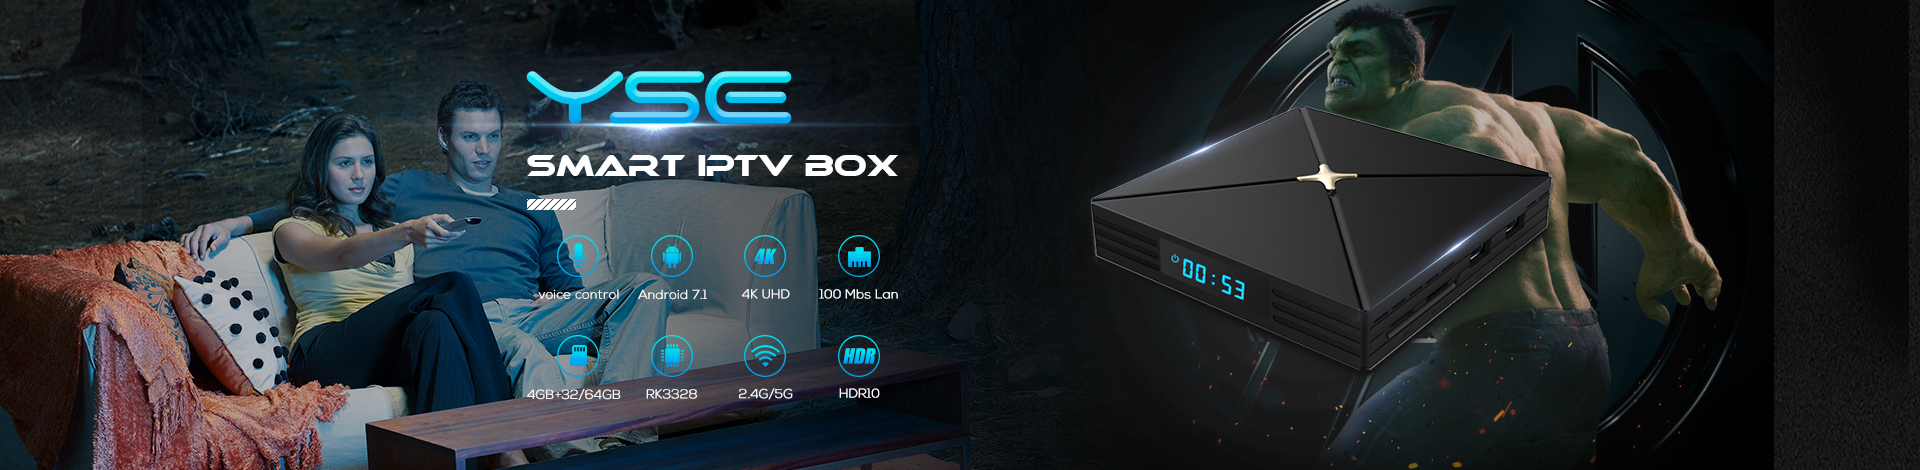 YSE - Android tv box